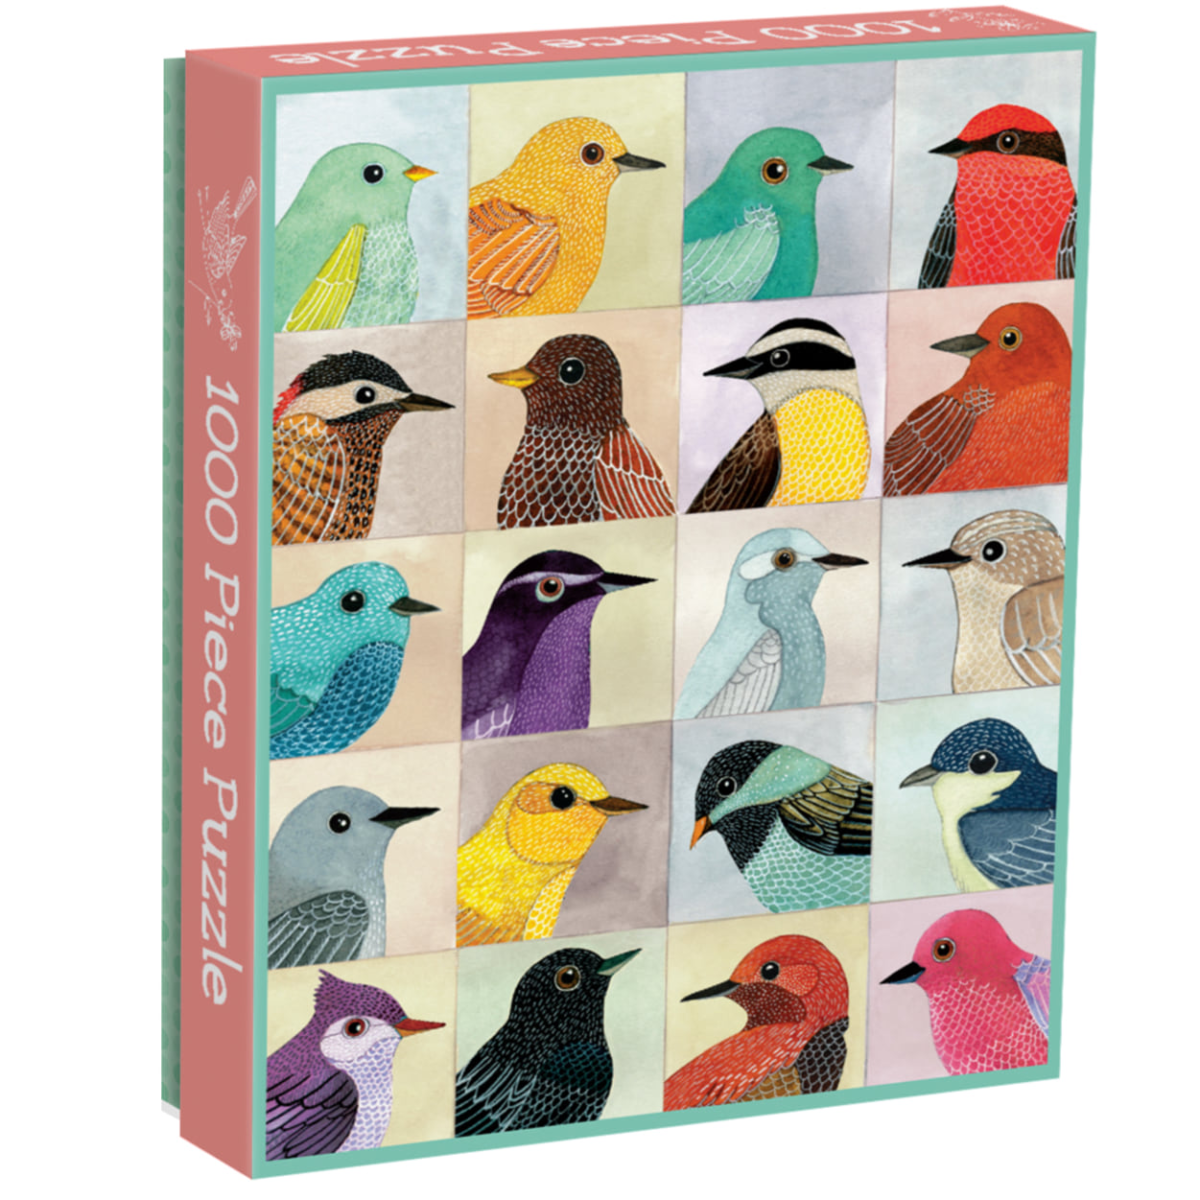 Galison Puzzle-Avian Friends 1000 Piece